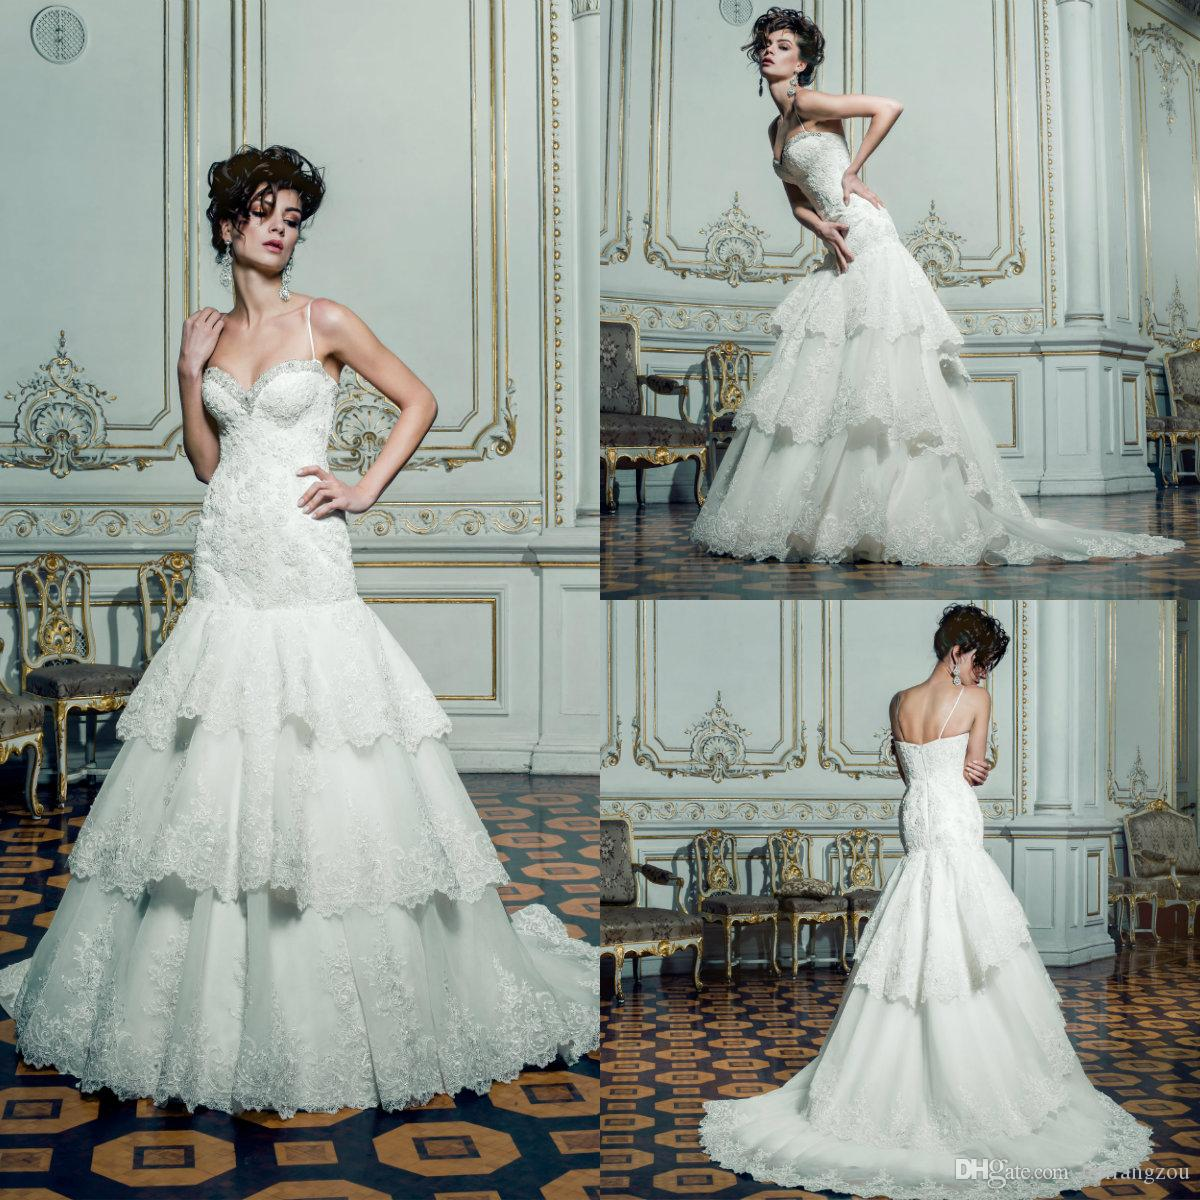 d08e6f0c27f ... Wedding Dresses Spaghetti Straps Lace Beaded Bridal Gowns With Tiered  Skirts Louise Sposa Plus Size Wedding Dress Wedding Party Dresses Affordable  ...